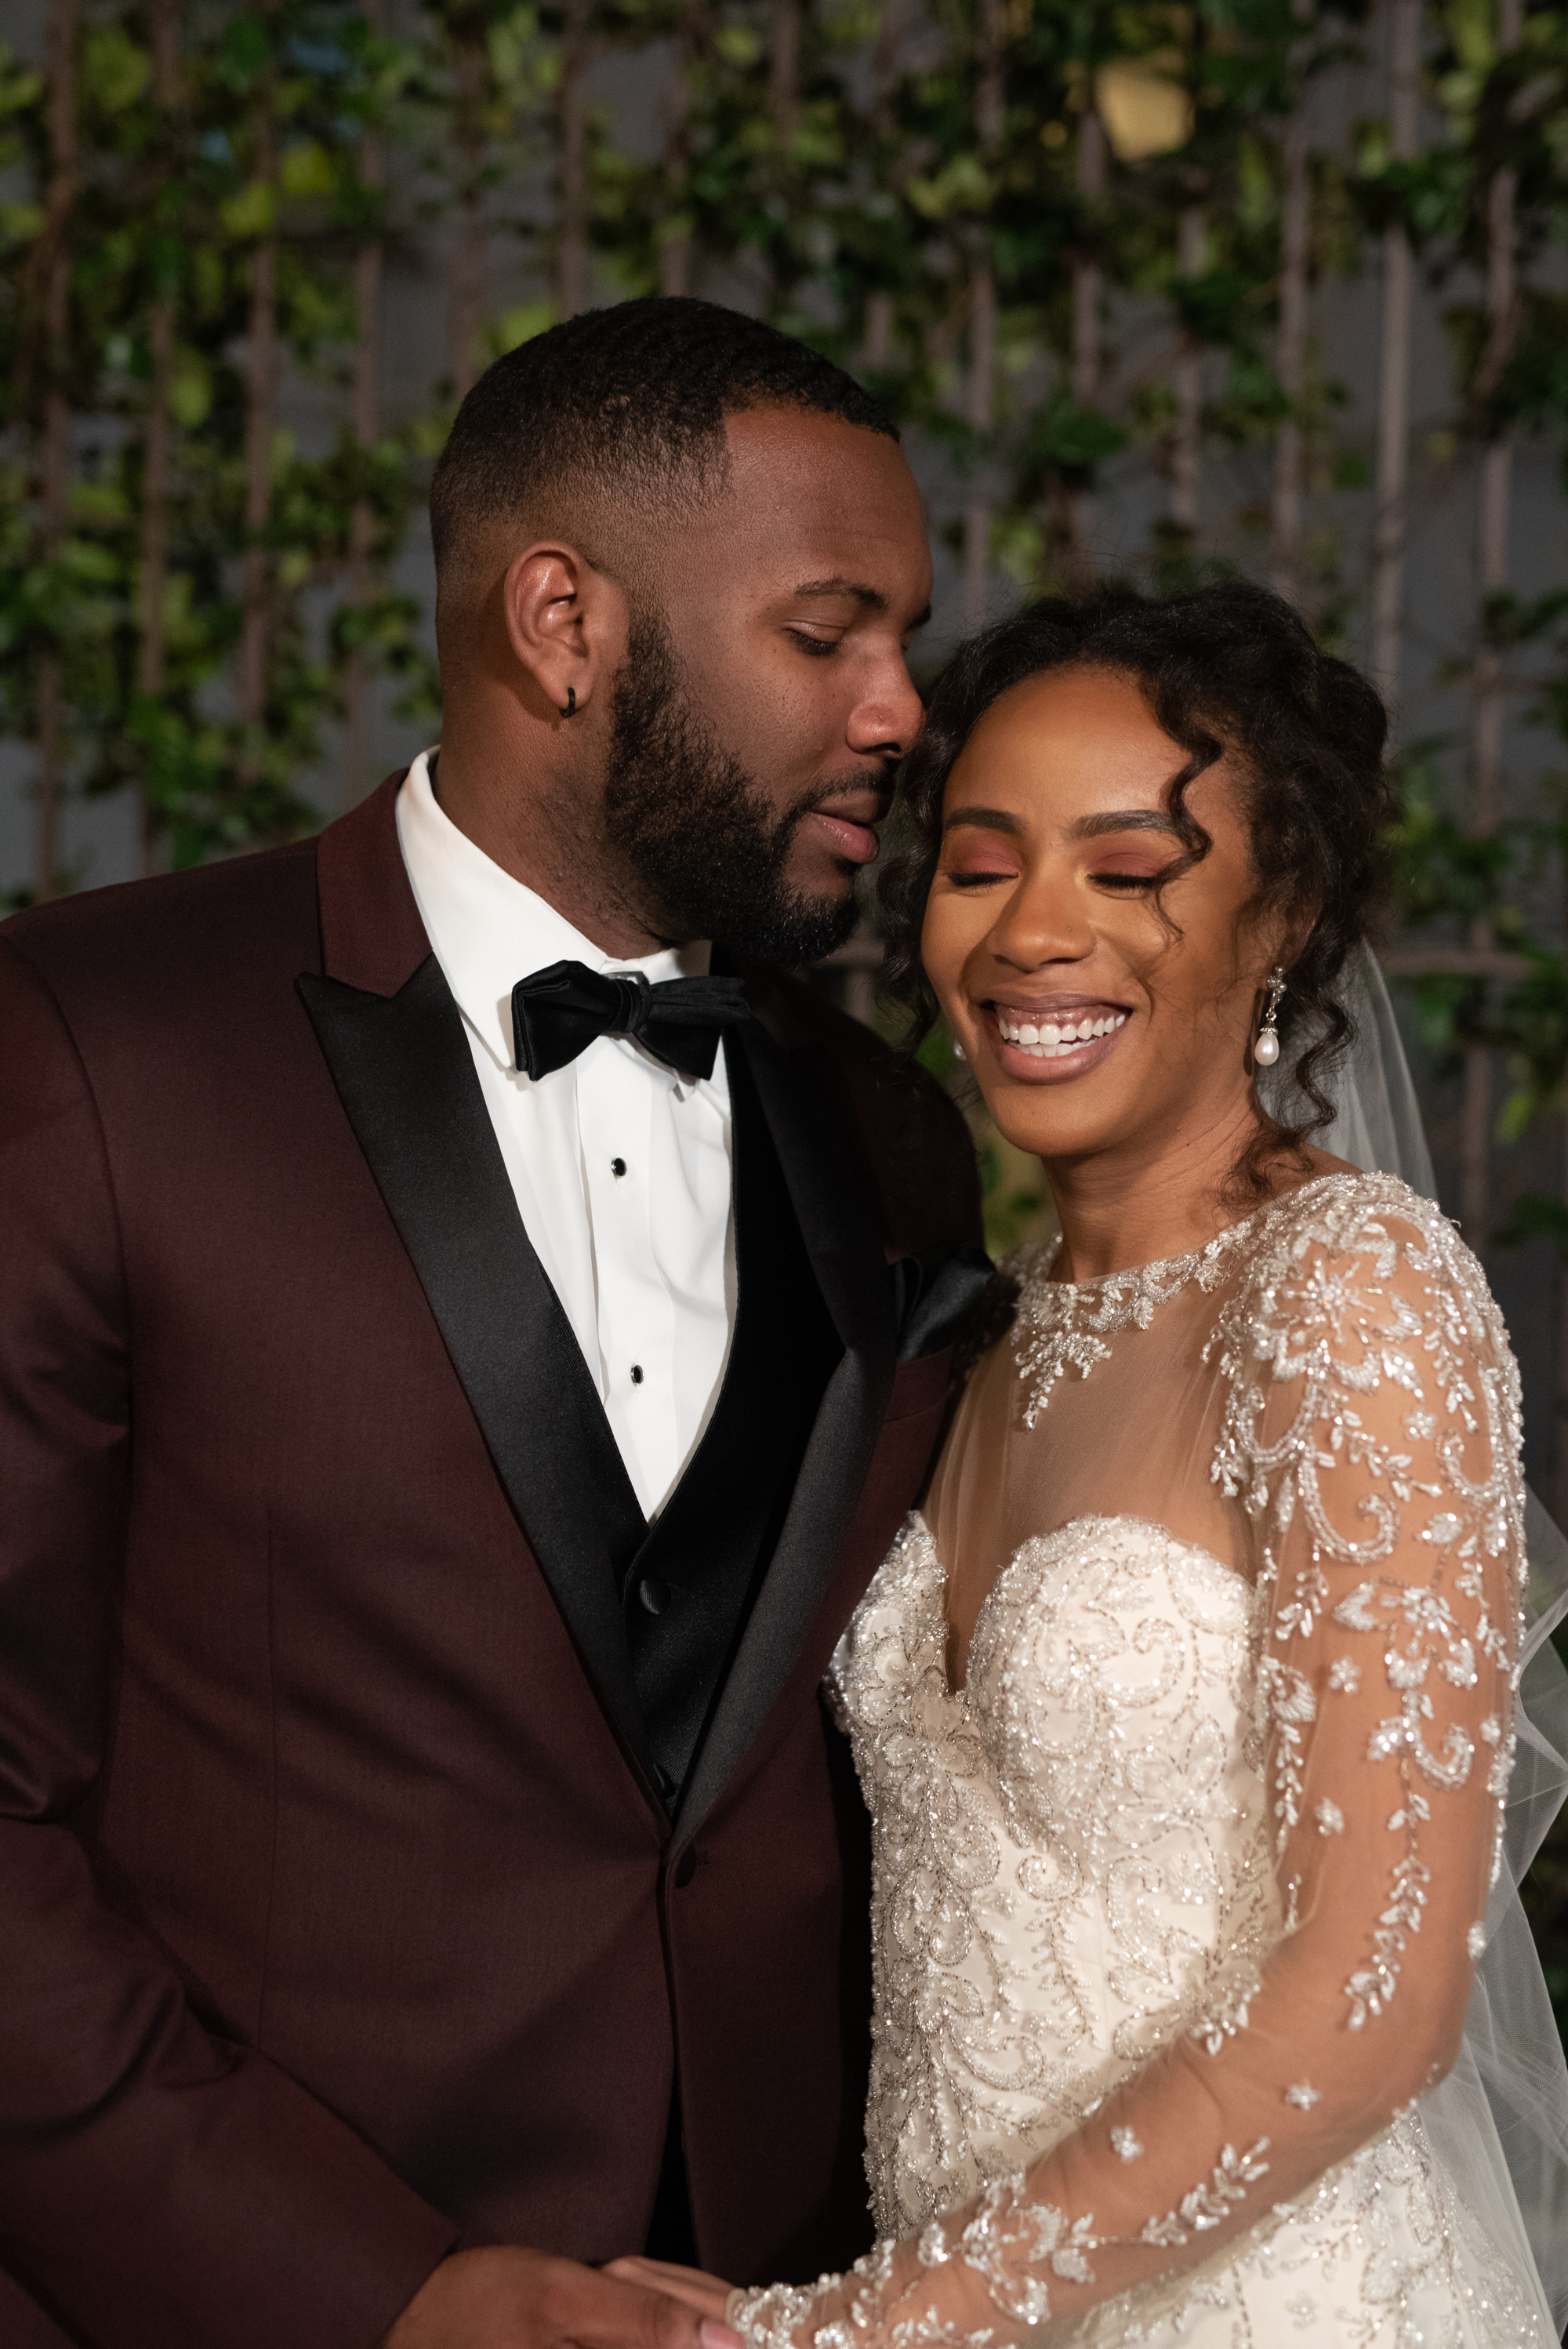 'Married at First Sight' Star Miles Is Torn on 'Very Complicated' Decision to Stay Married to Karen